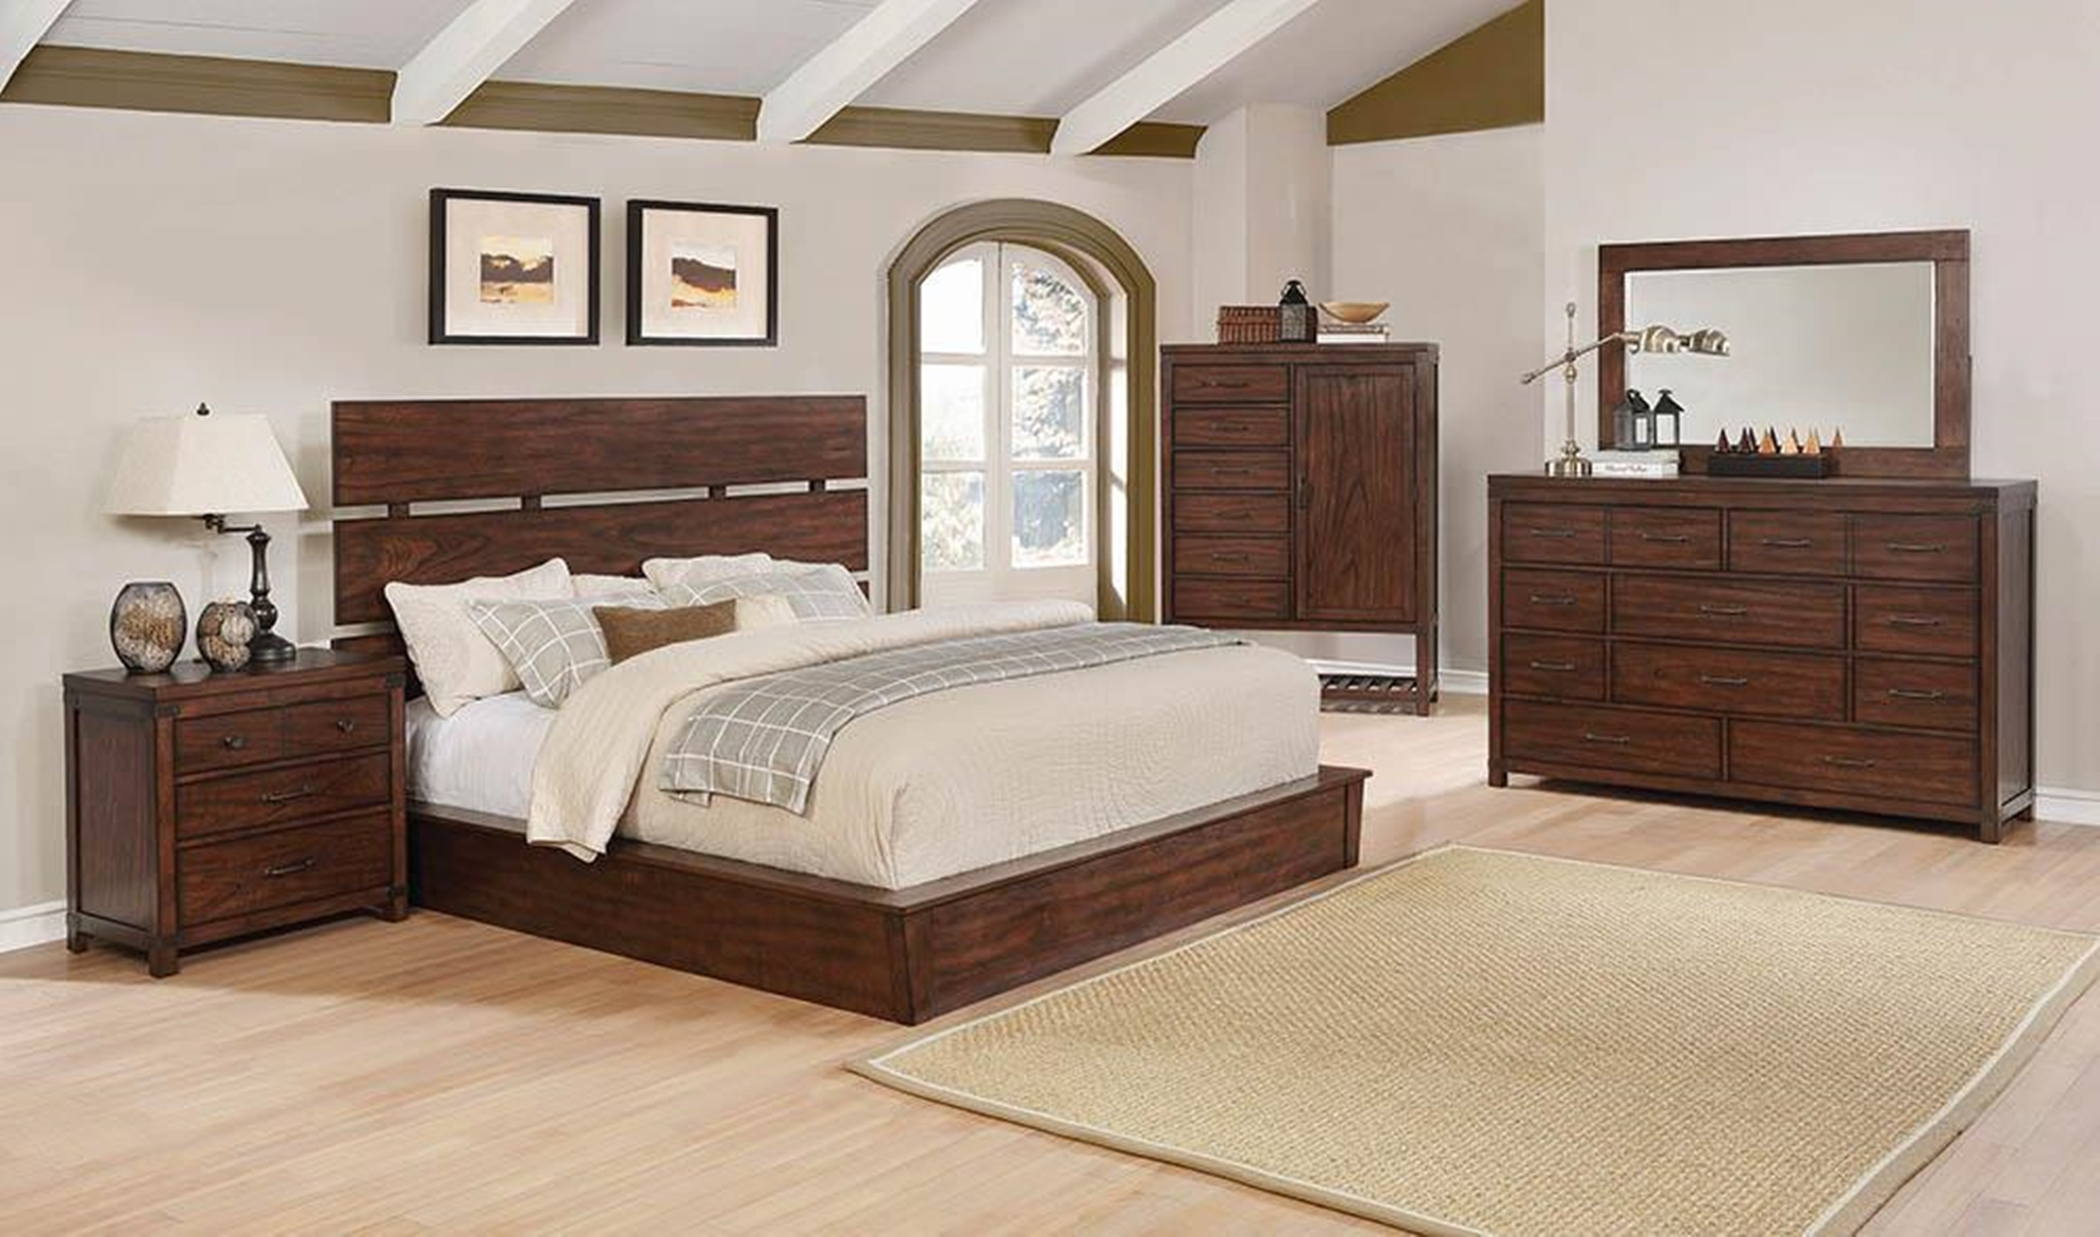 Artesia Industrial Dark Cocoa E. King Bed